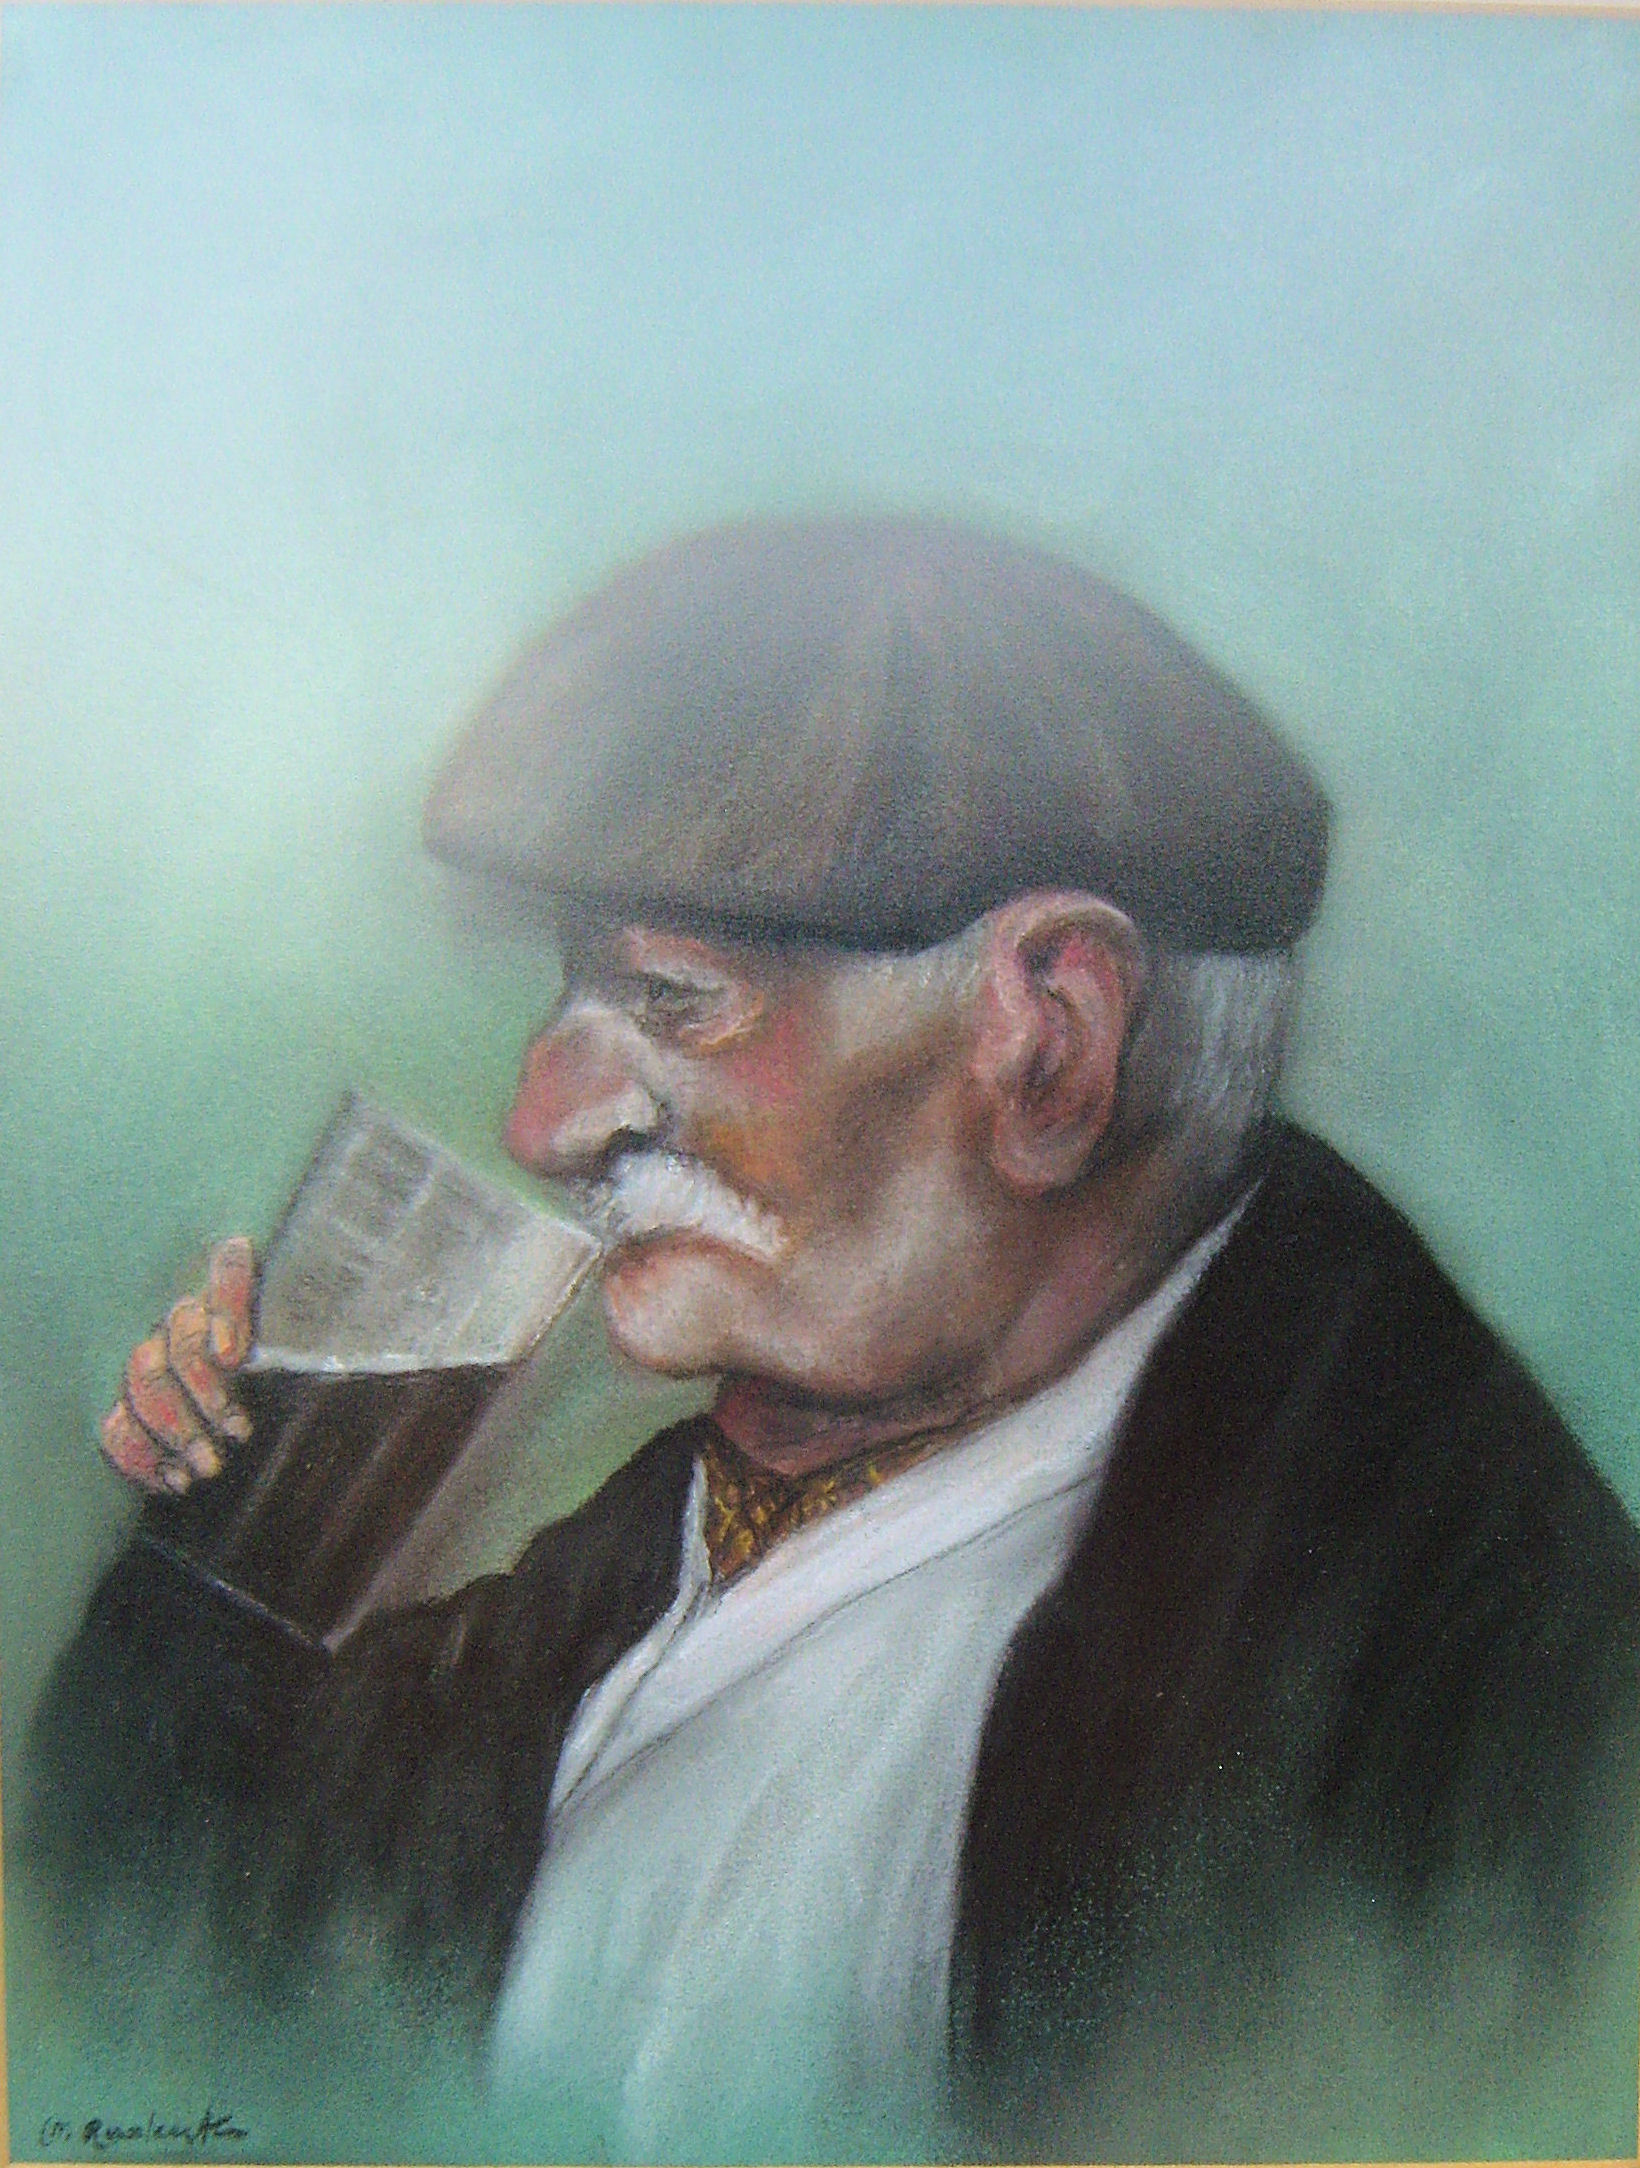 Old man drinking beer